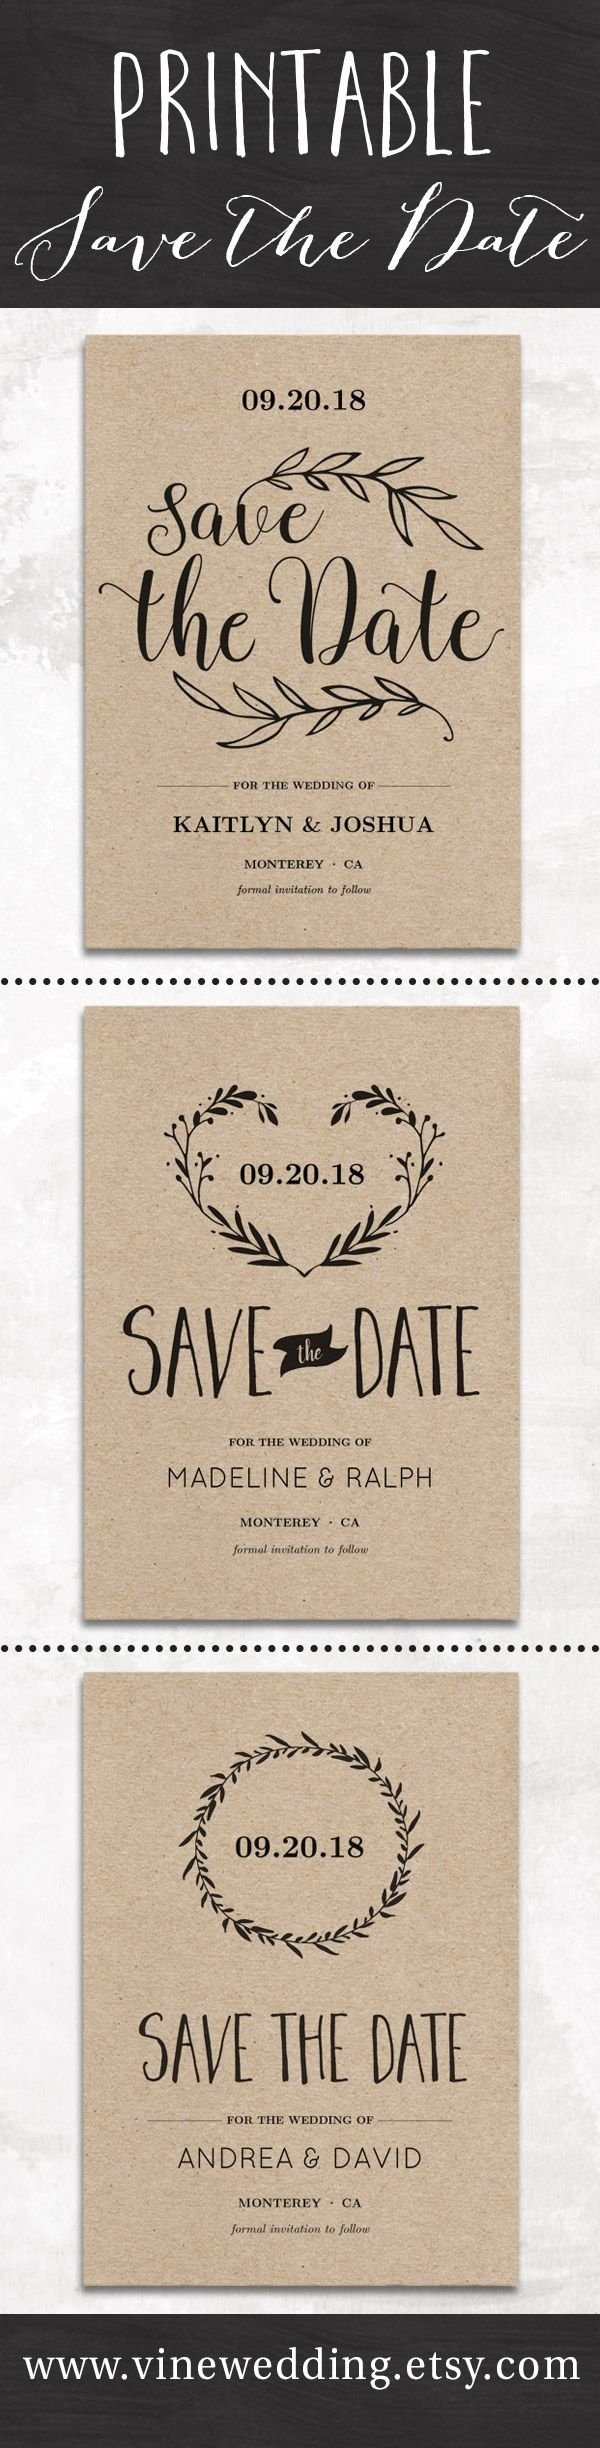 10 Stunning Diy Save The Date Ideas diy rustic save the date cards diy campbellandkellarteam